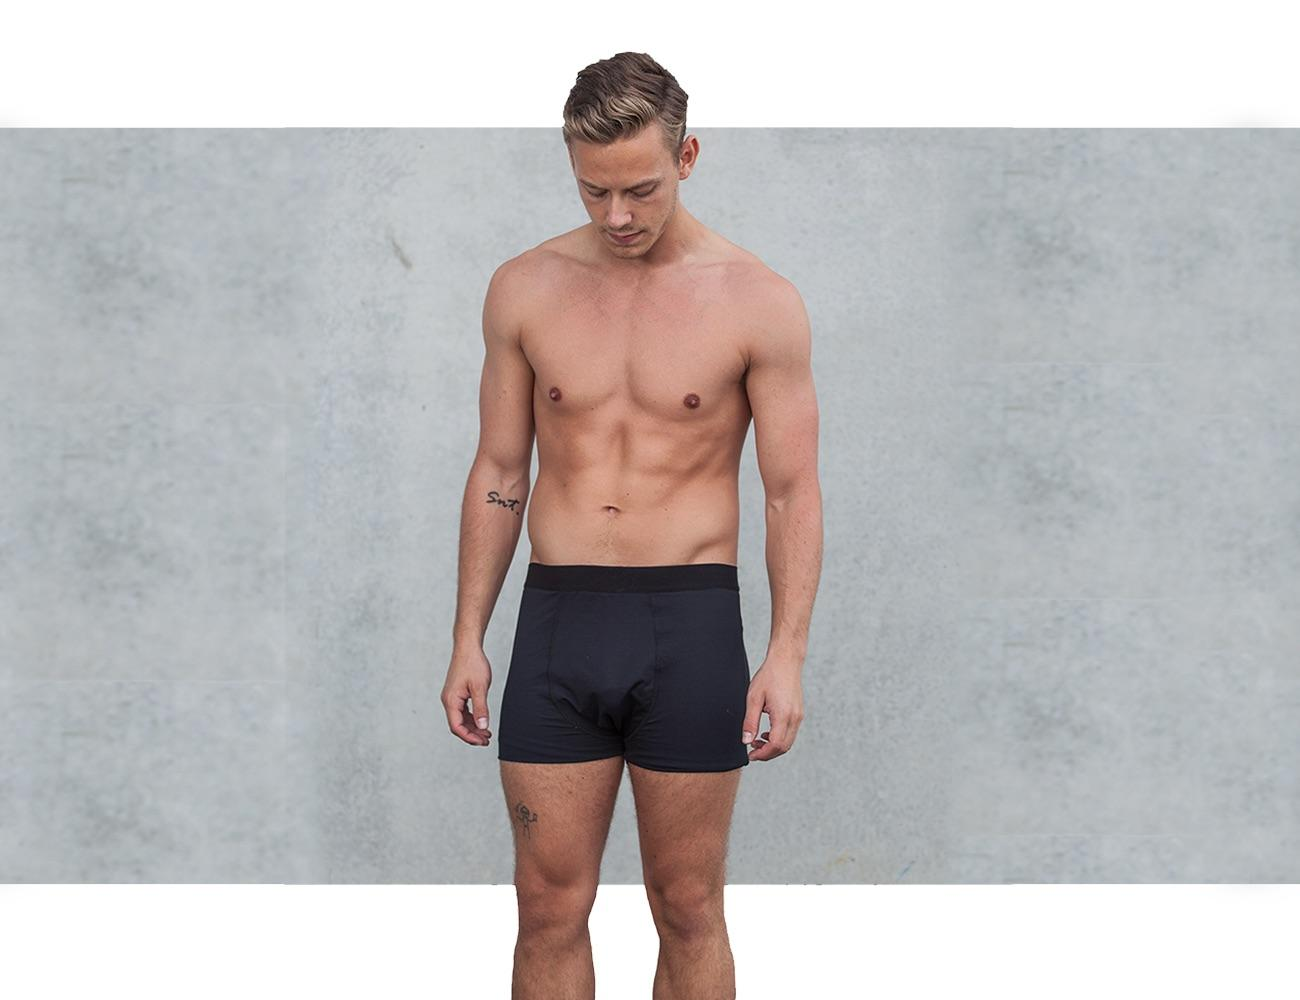 Mili-Tech Boxers – Inspired by the Danish Military